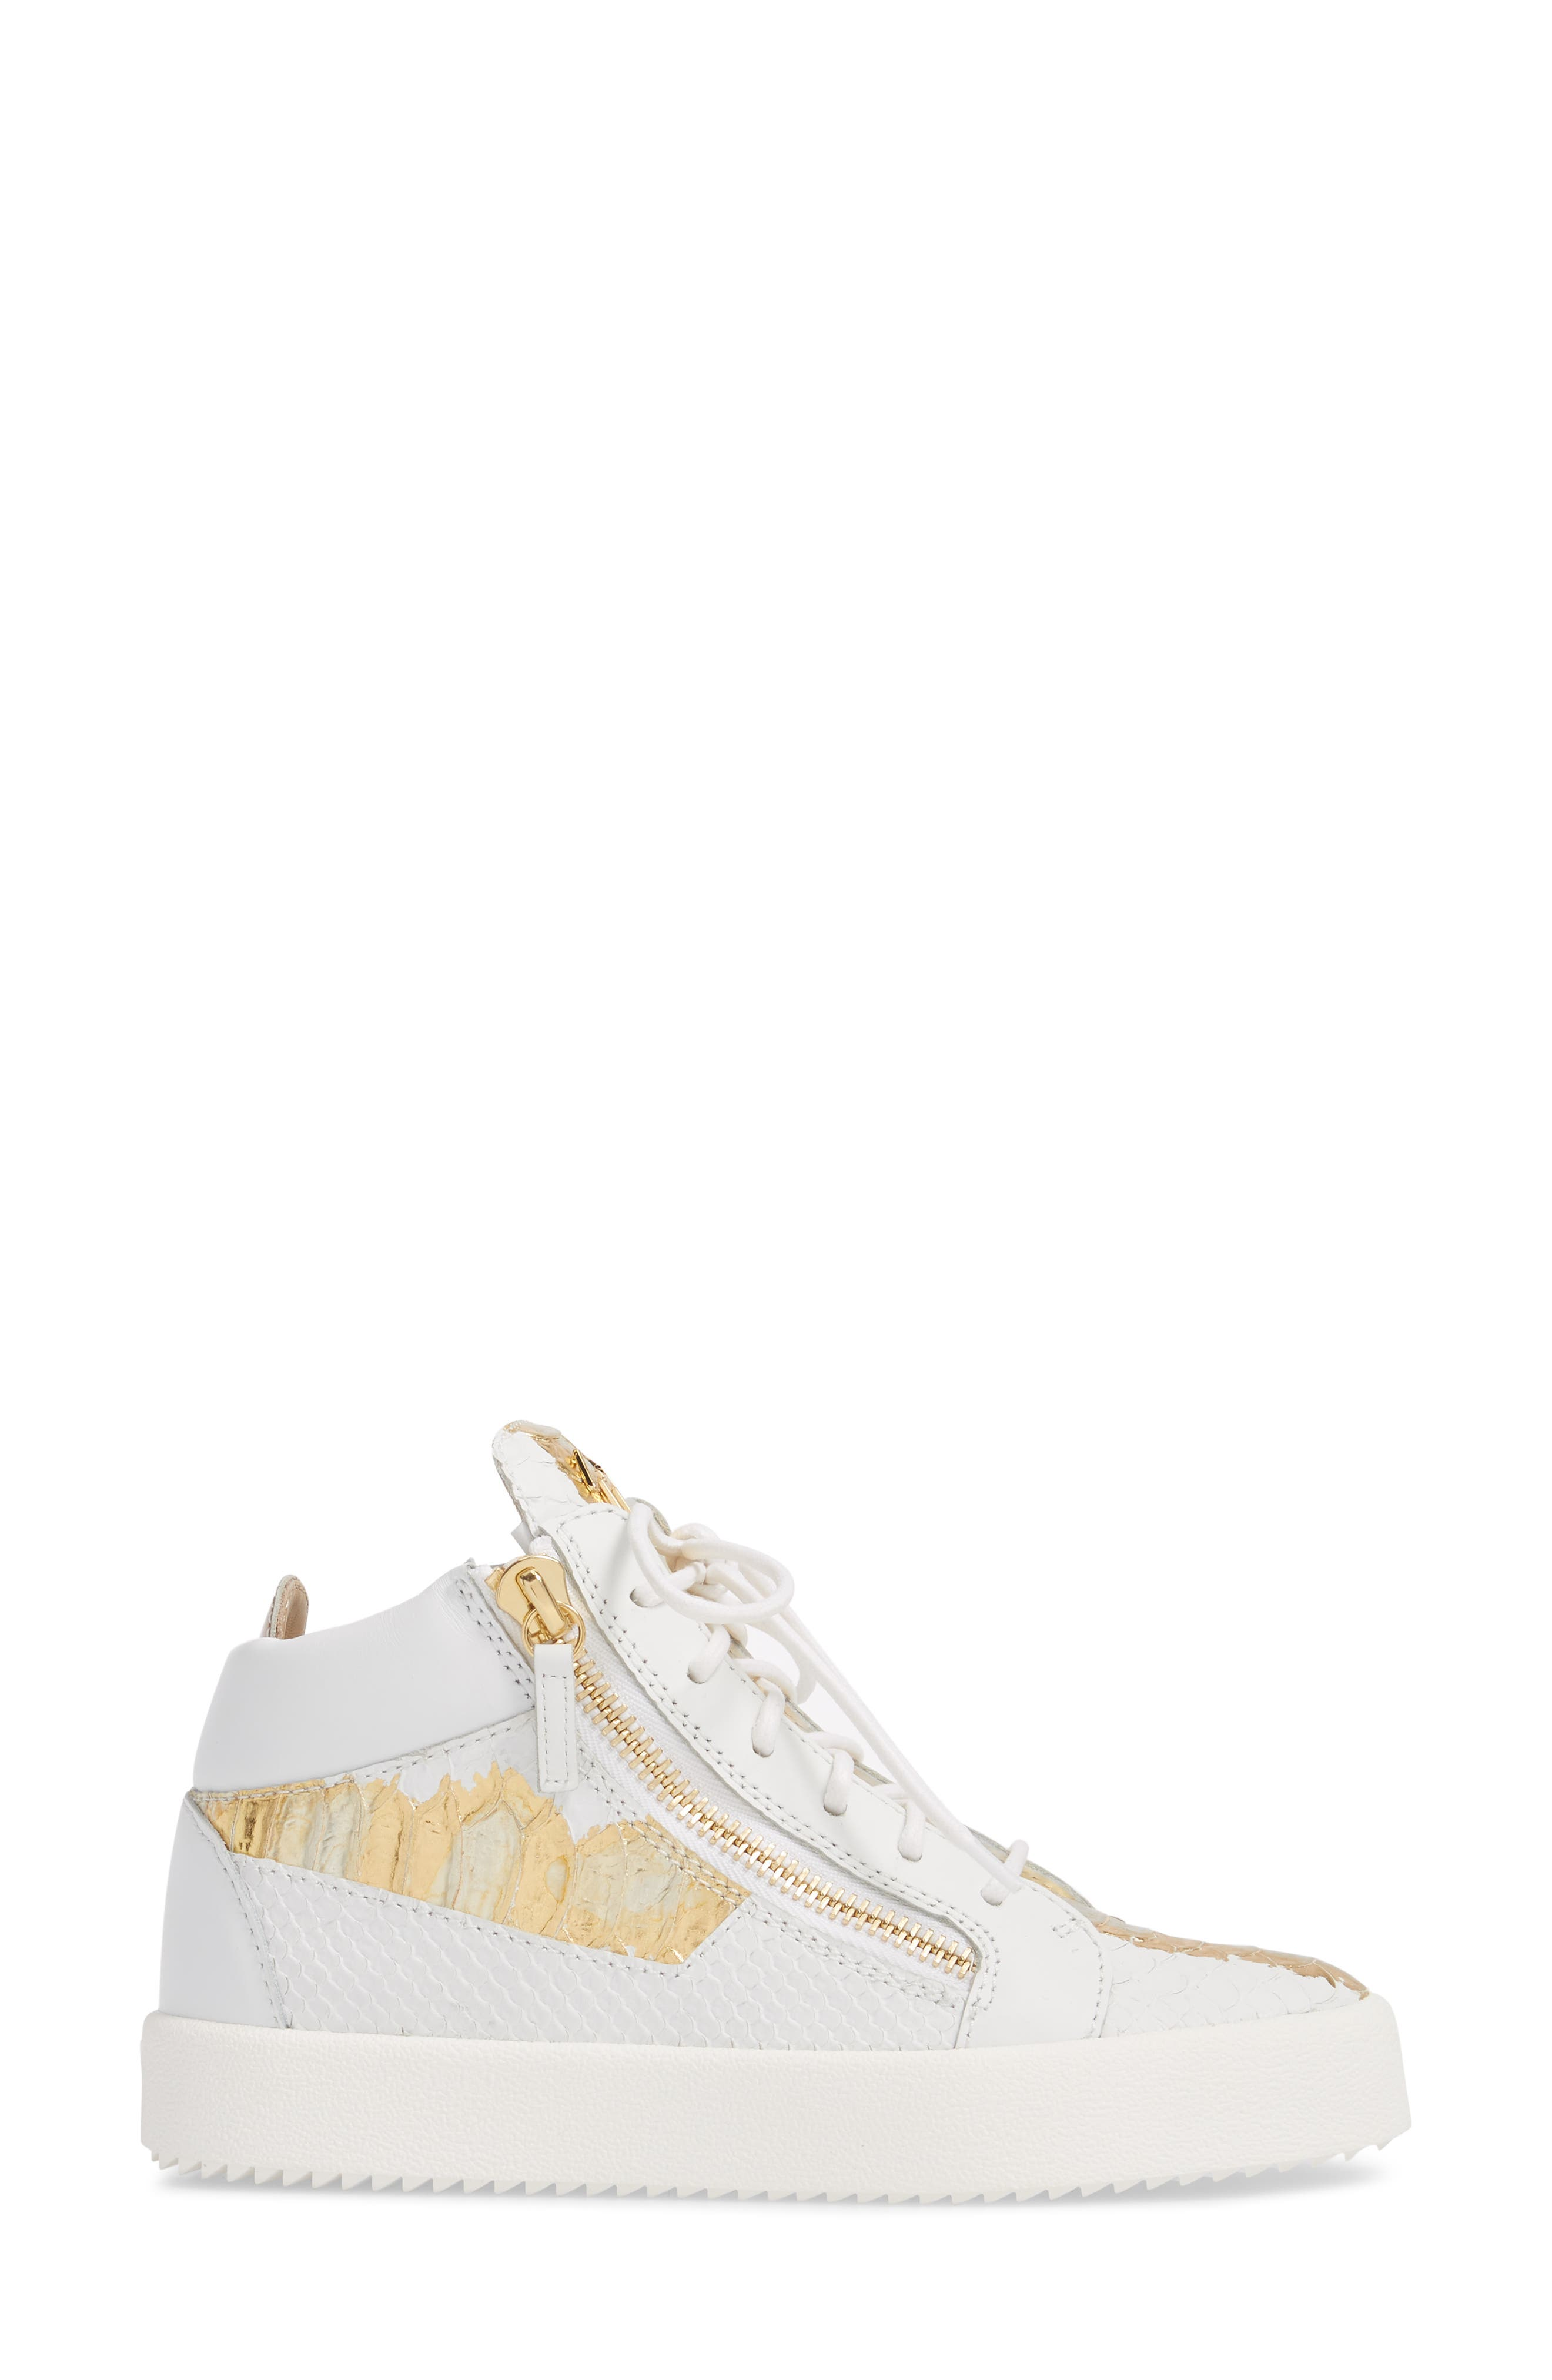 May London Mid Top Sneaker,                             Alternate thumbnail 3, color,                             White/ Gold